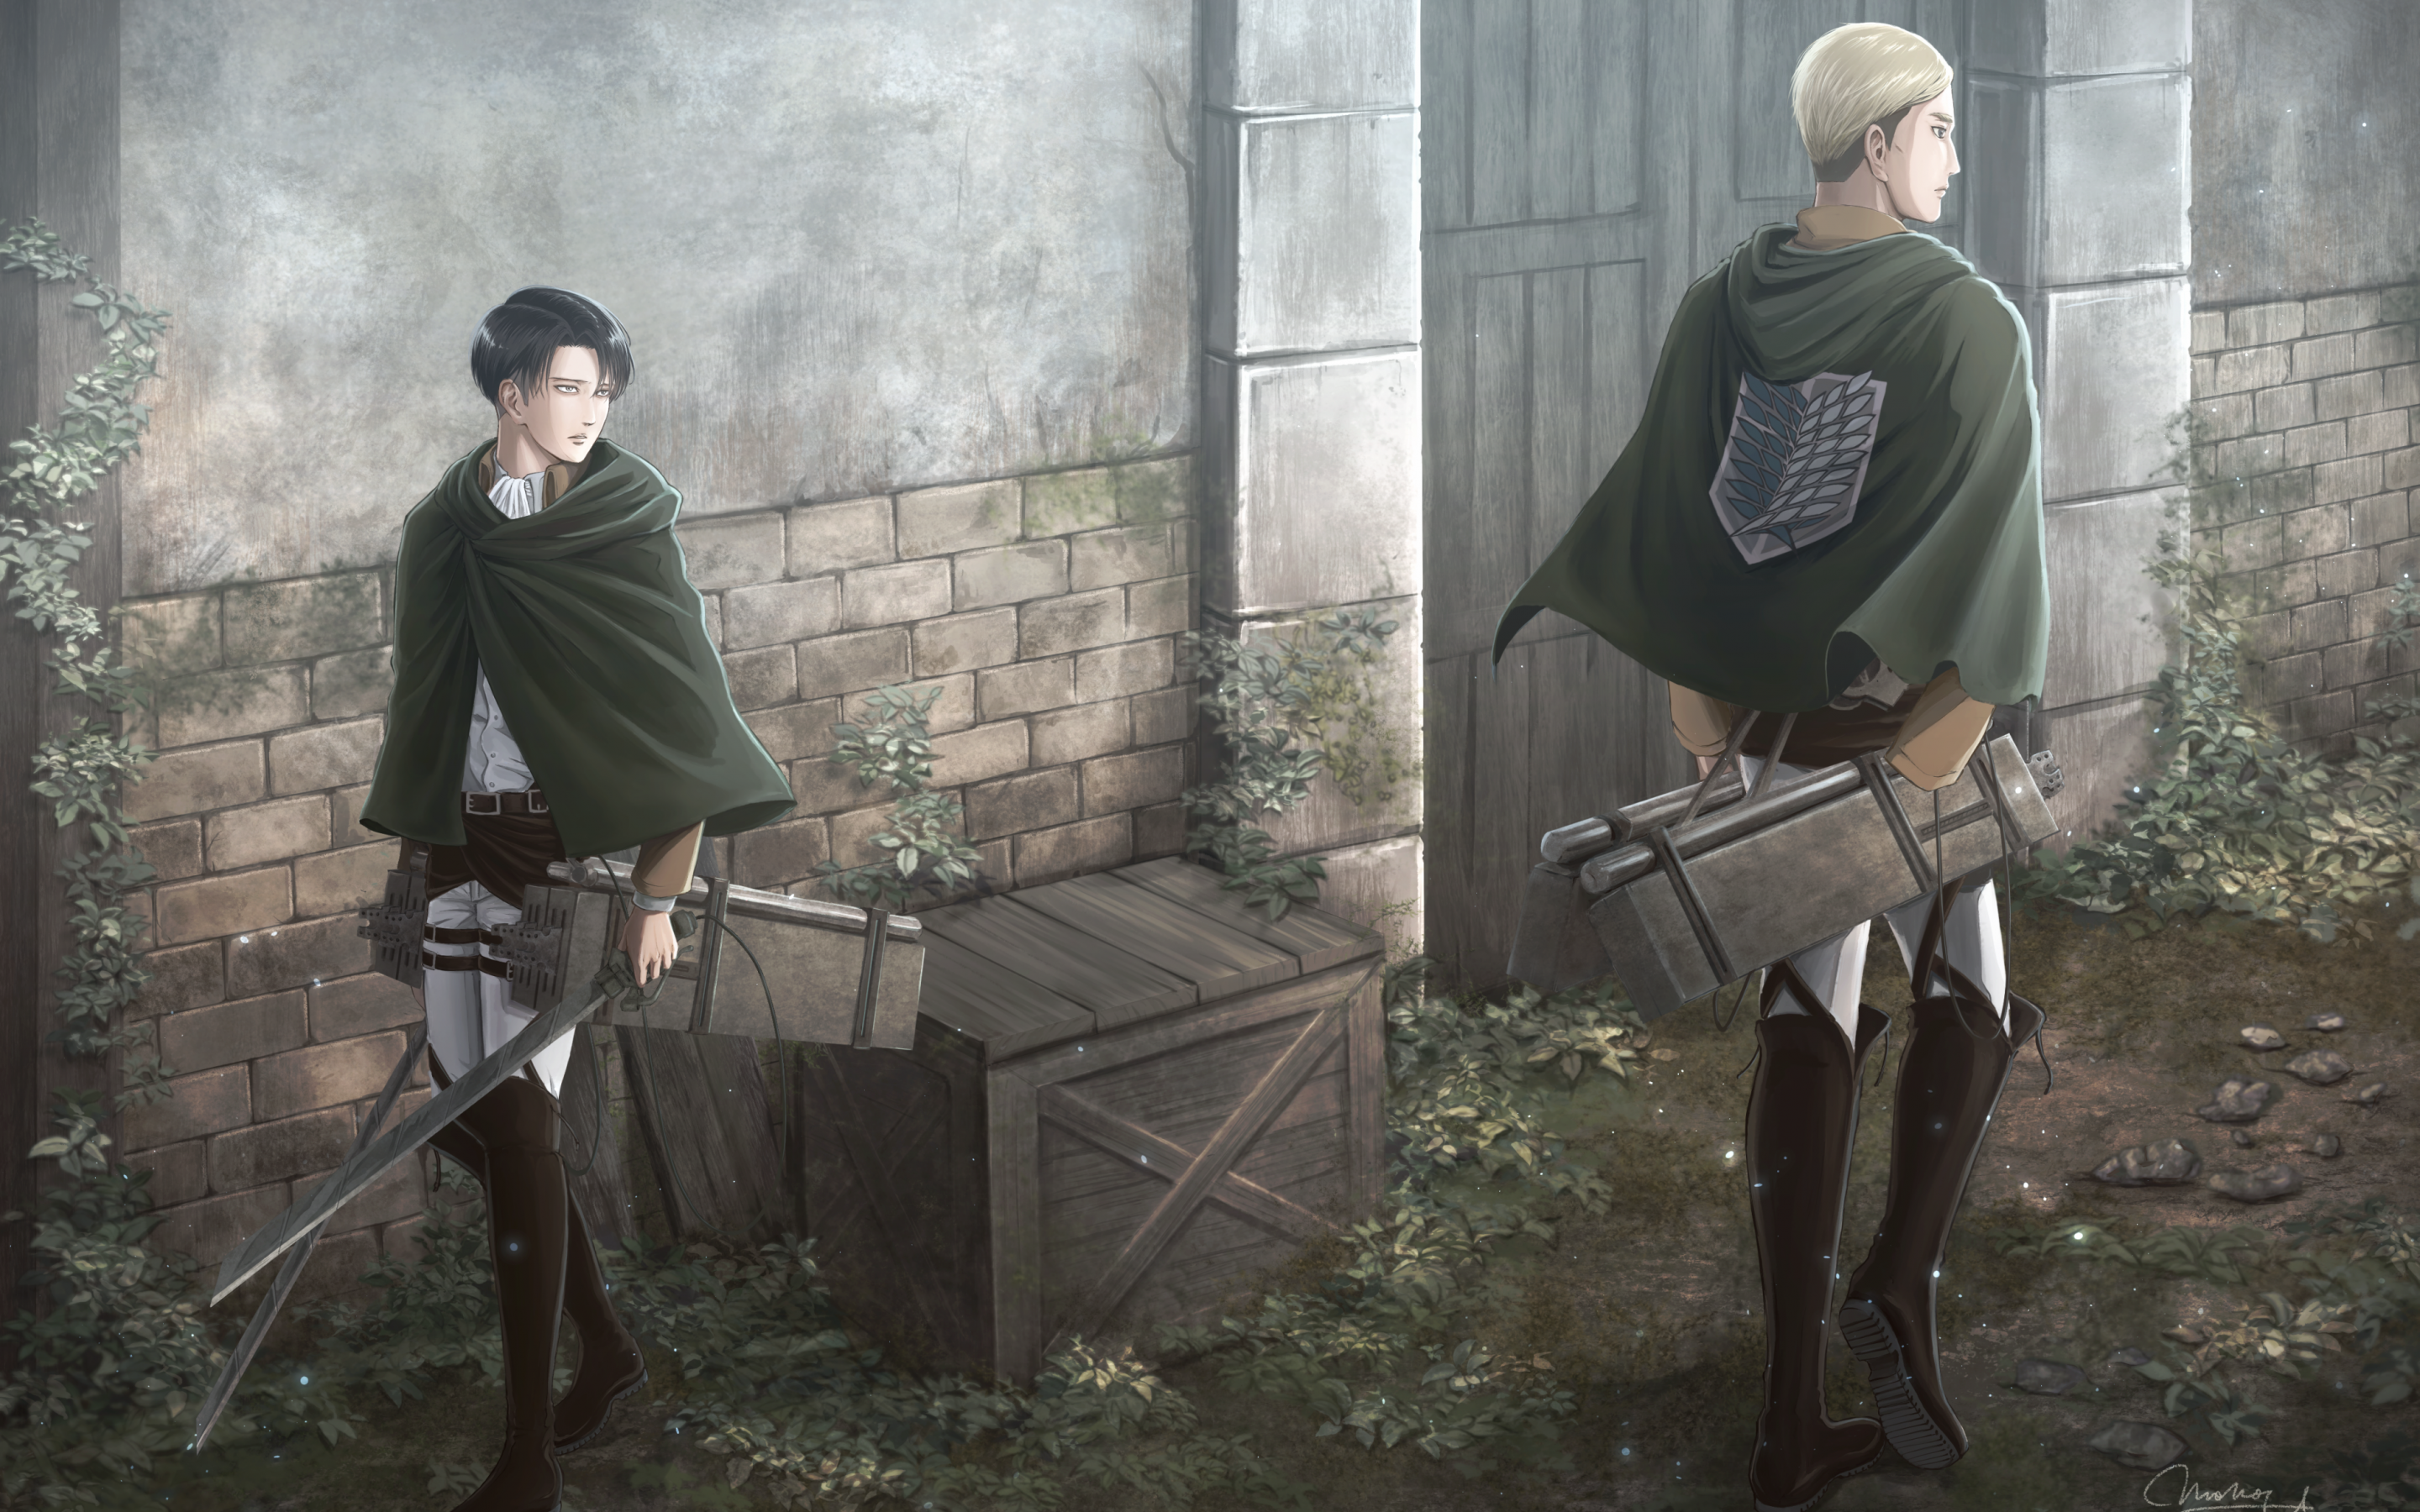 Erwin Attack On Titan Wallpapers Top Free Erwin Attack On Titan Backgrounds Wallpaperaccess